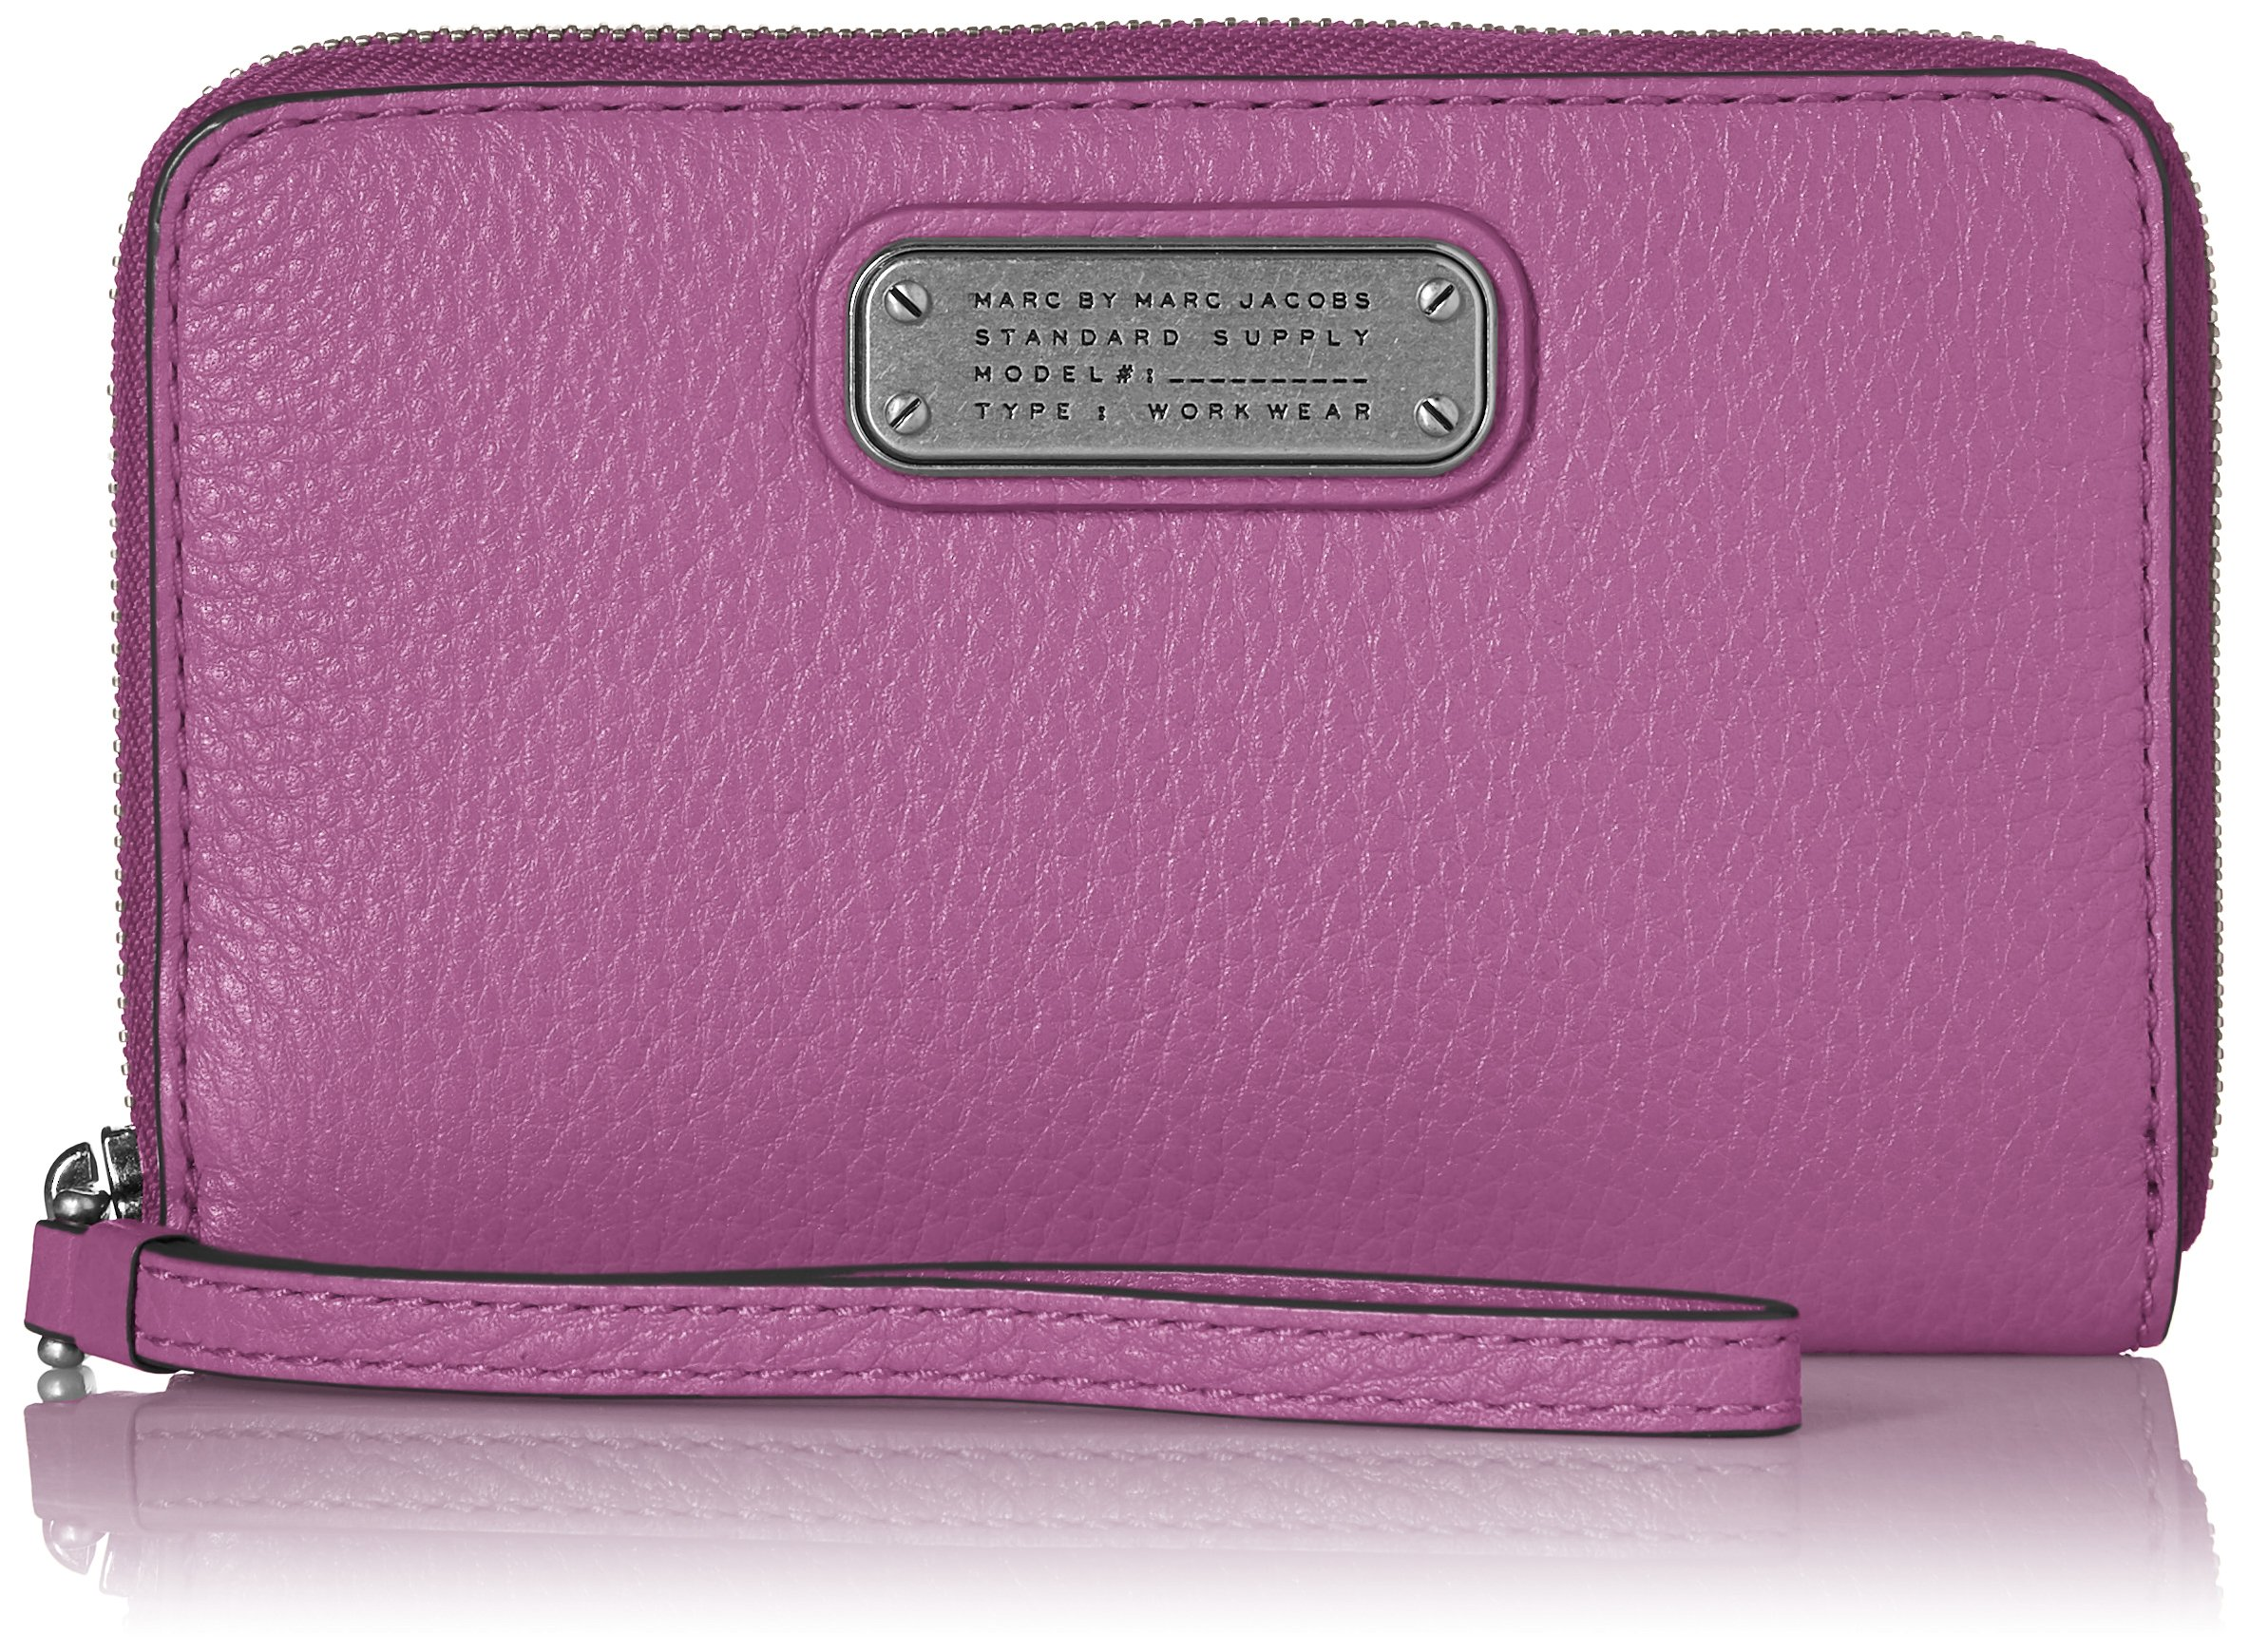 Marc by Marc Jacobs New Q Wingman Wristlet, Lovely Violet, One Size